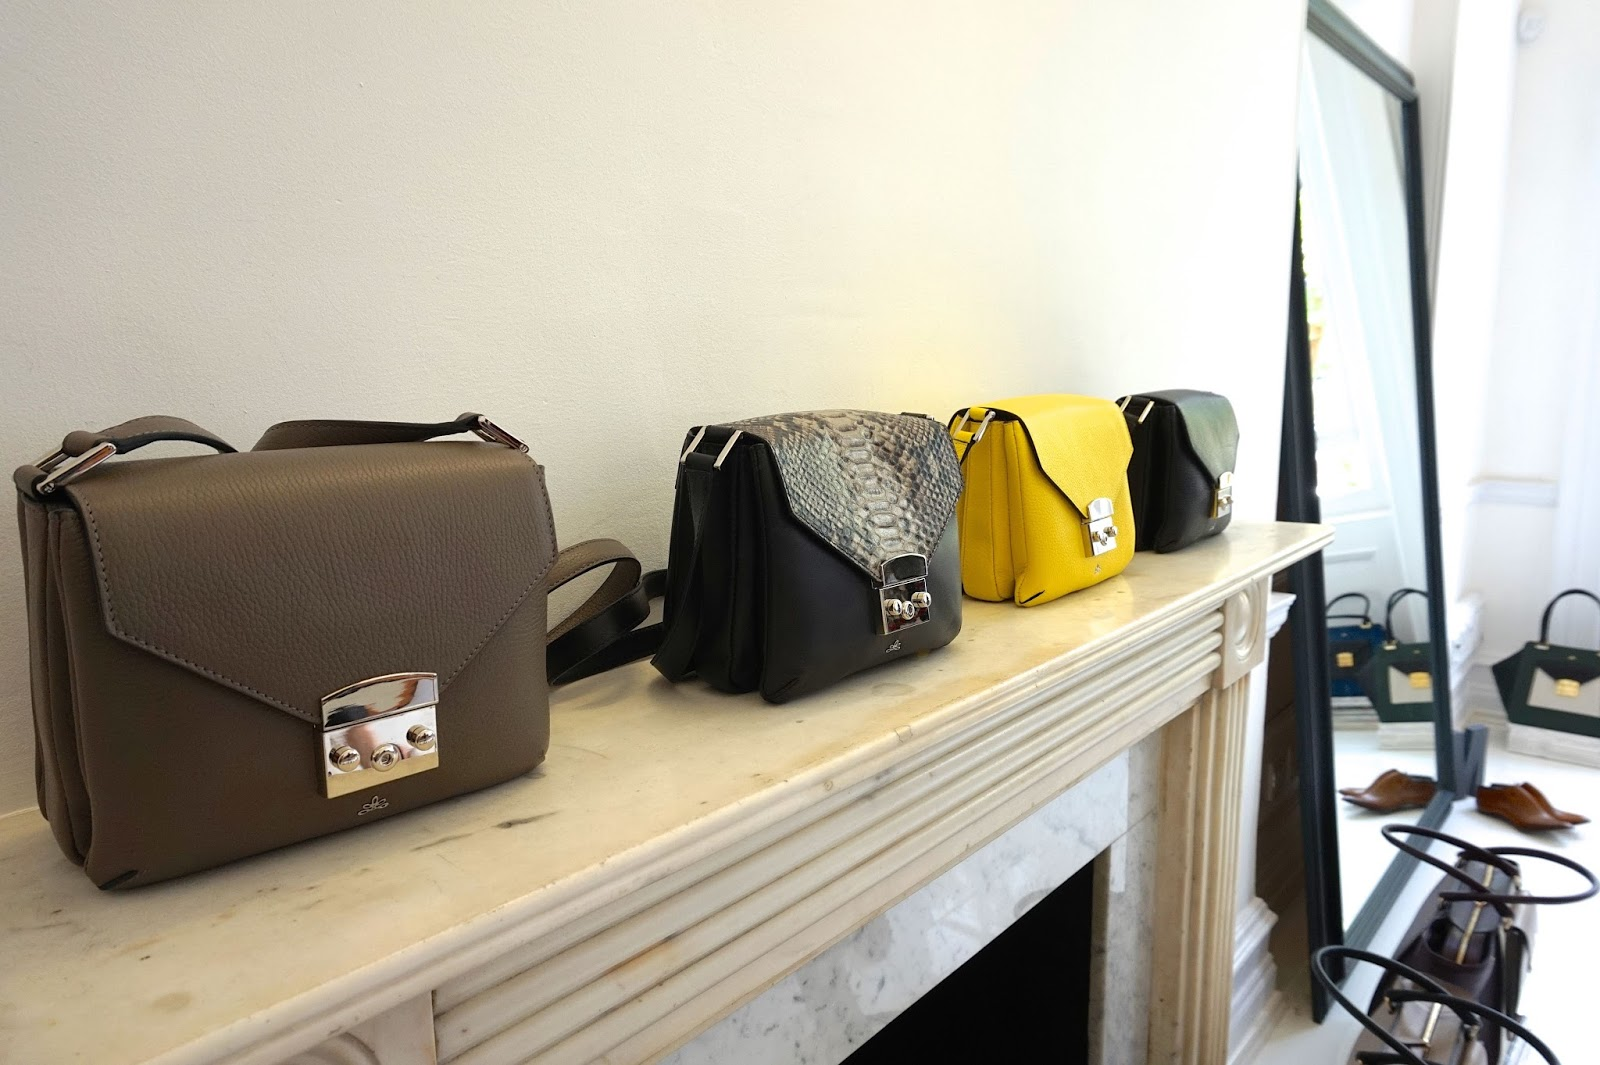 milli millu handbags event london